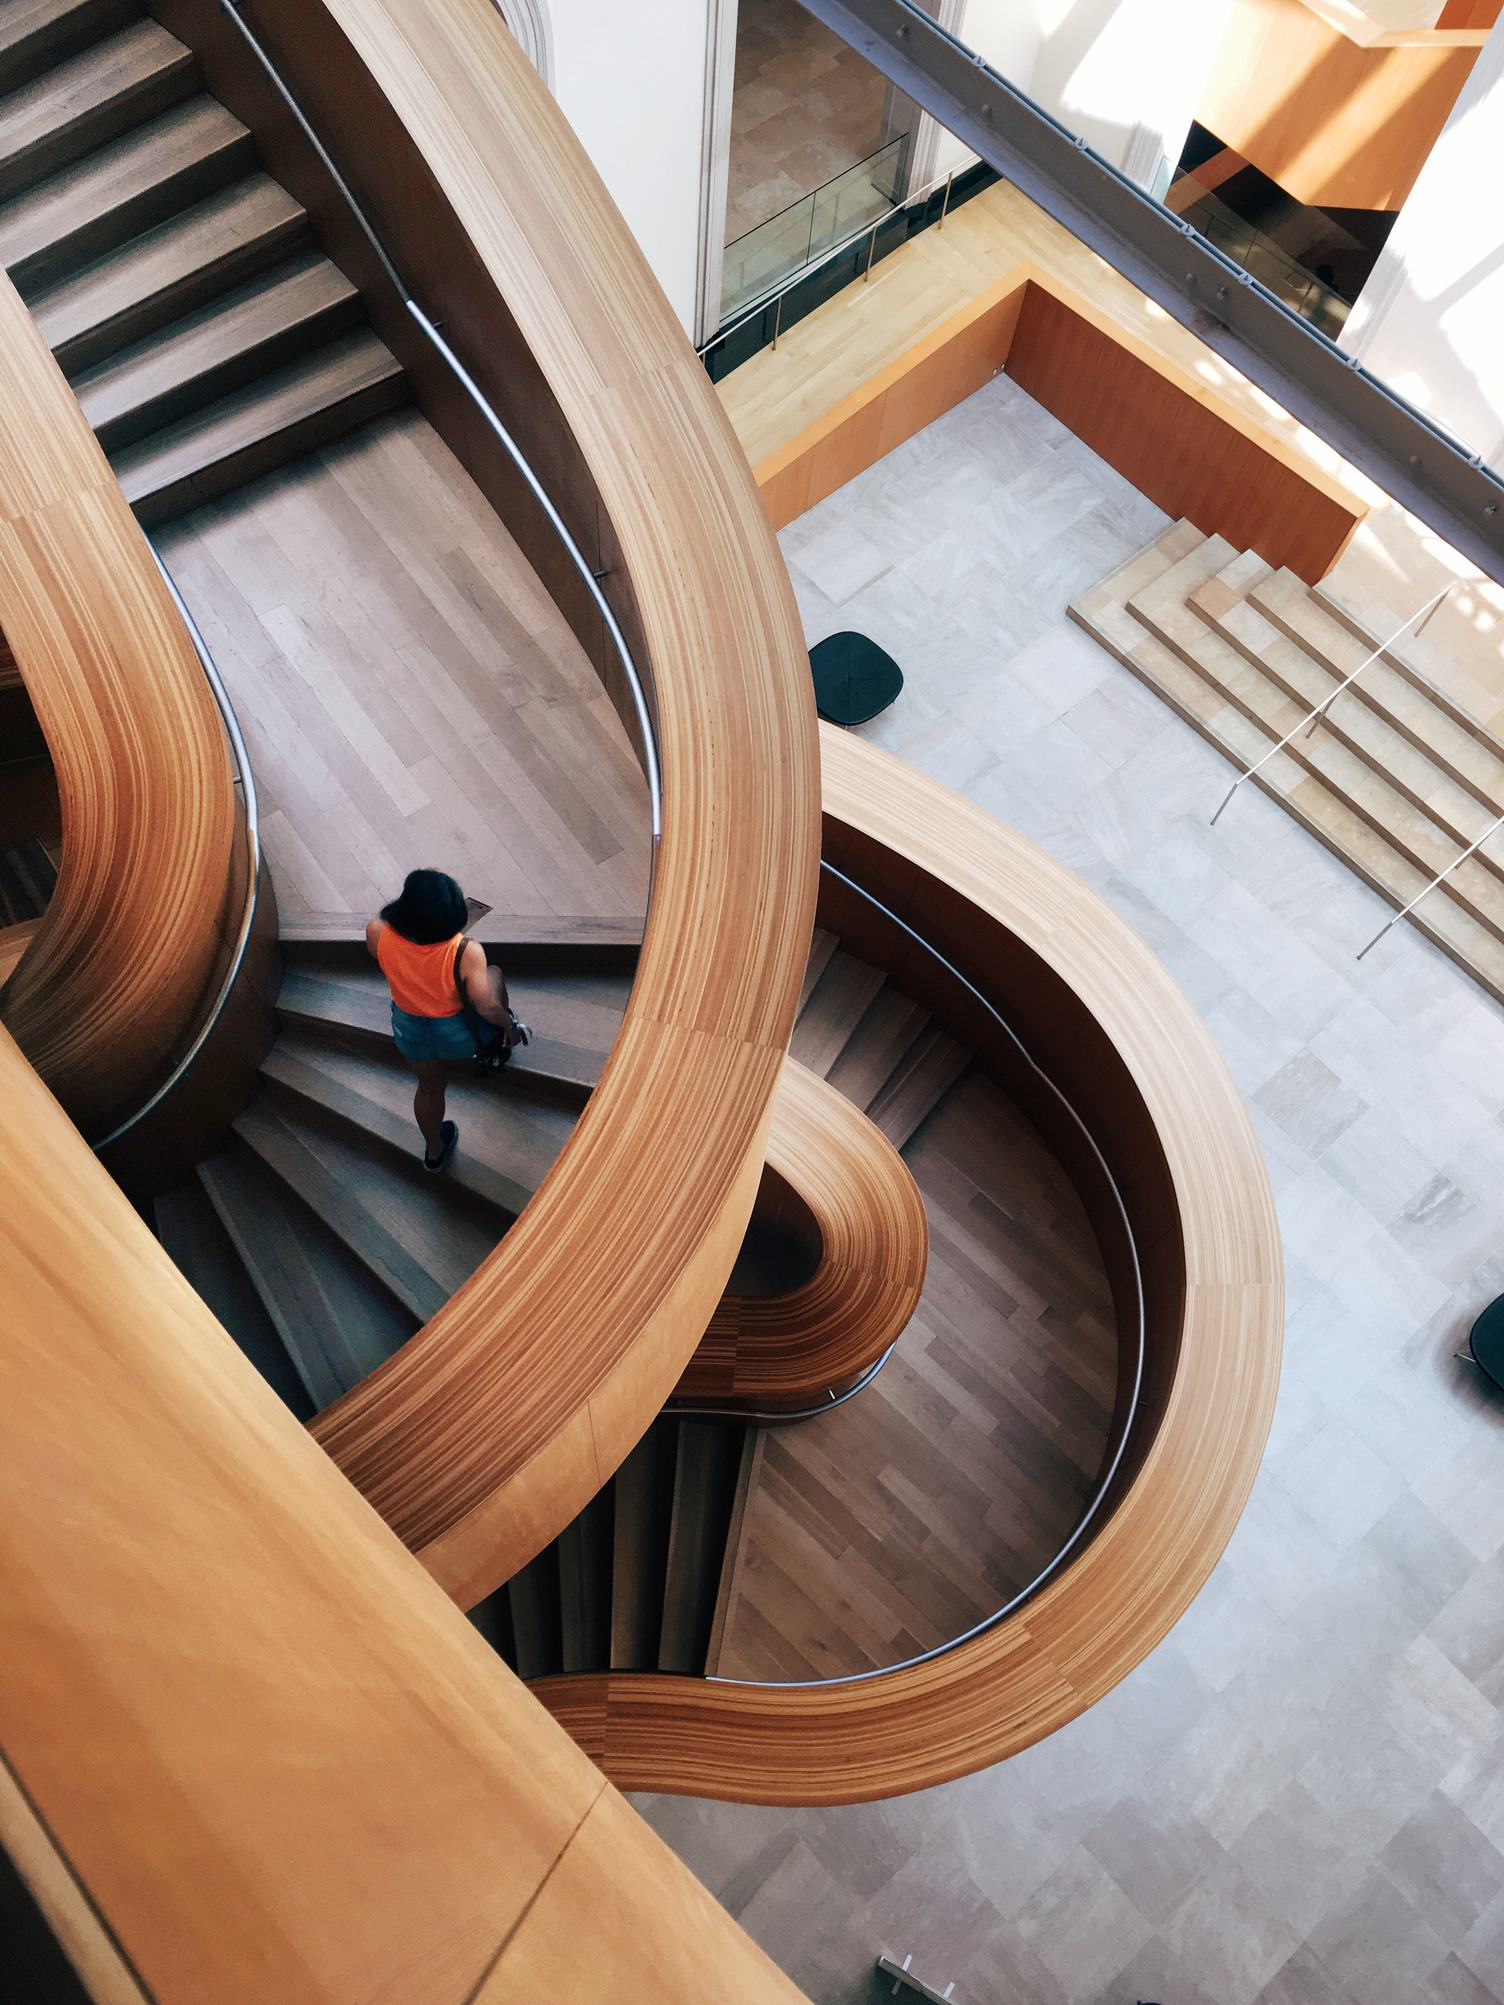 Curly Wooden Stairs Interior Design